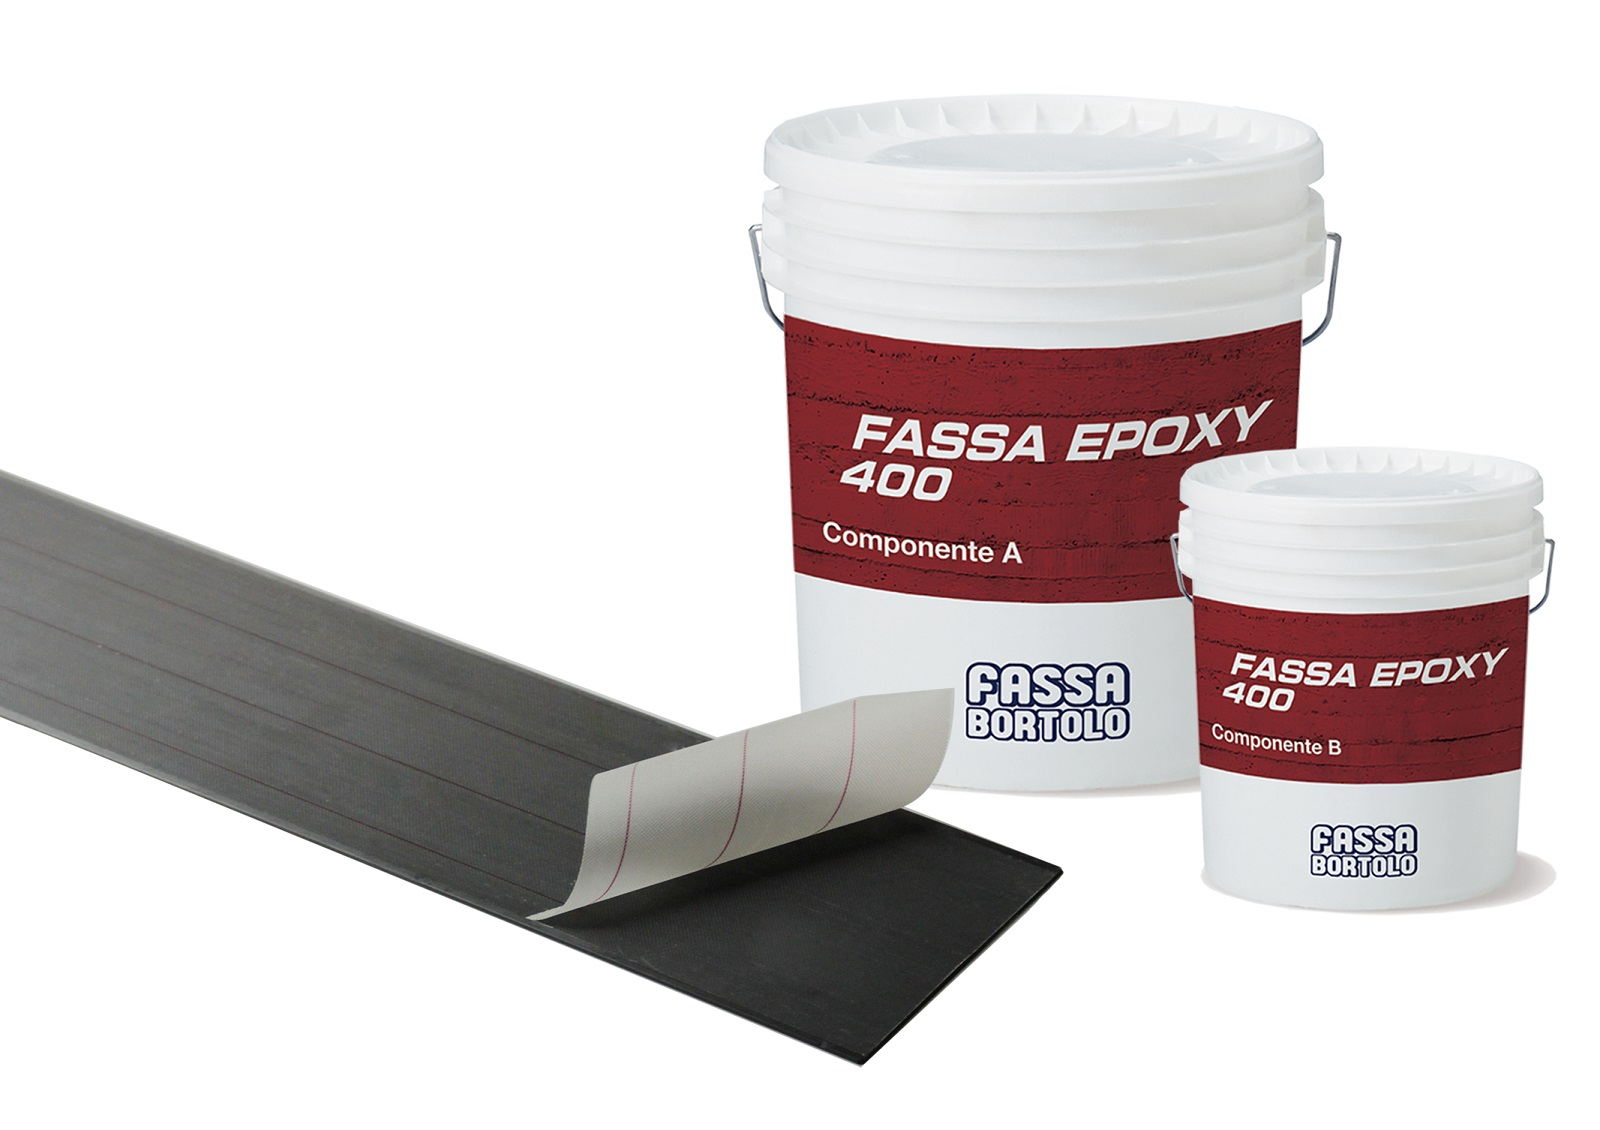 FASSAPLATE CARBON SYSTEM